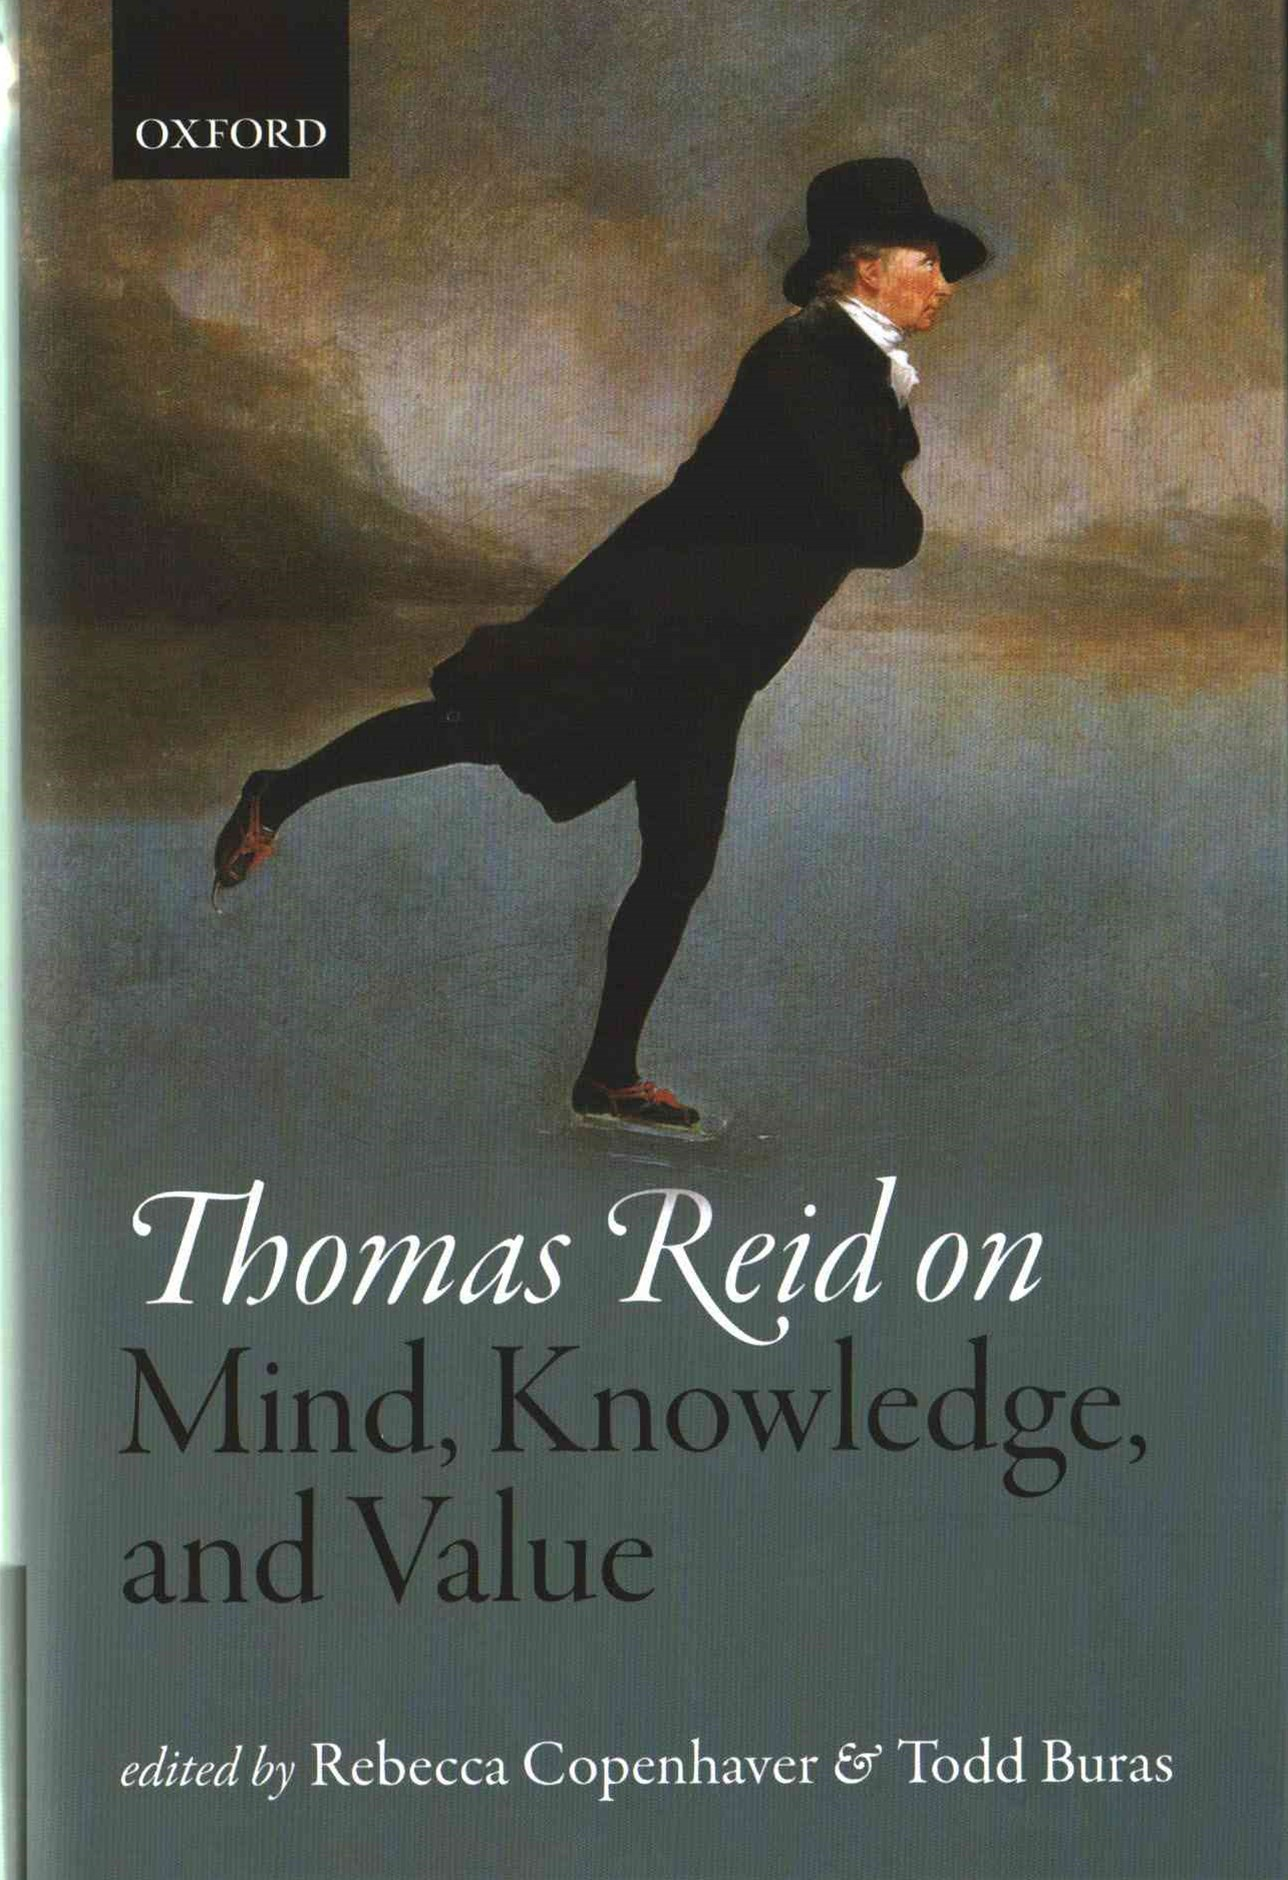 Thomas Reid on Mind, Knowledge, and Value